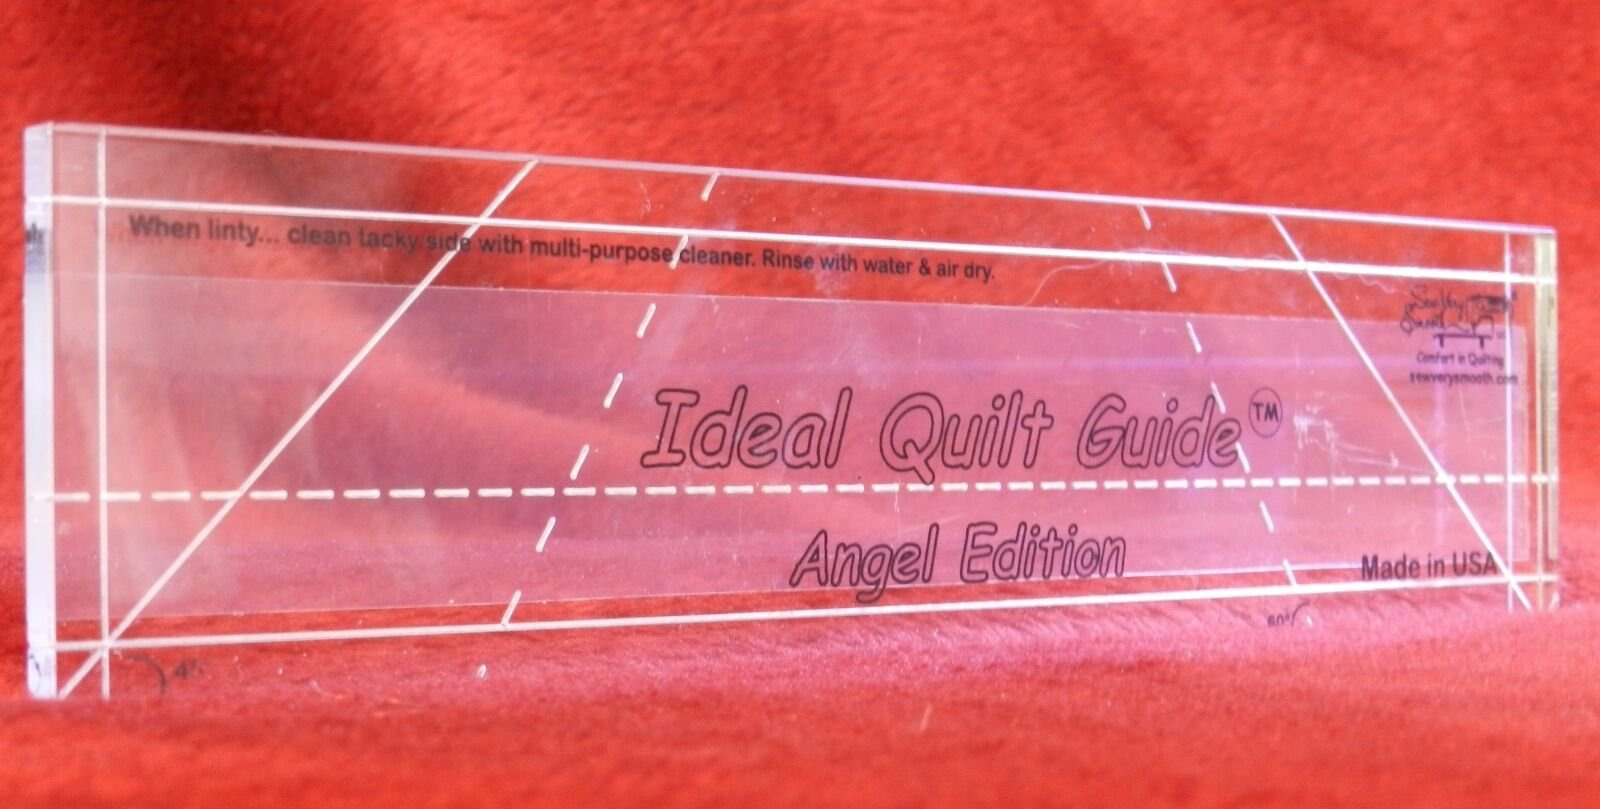 Sew Very Smooth Ideal Quilt Guide Angel Edition Longarm Ruler